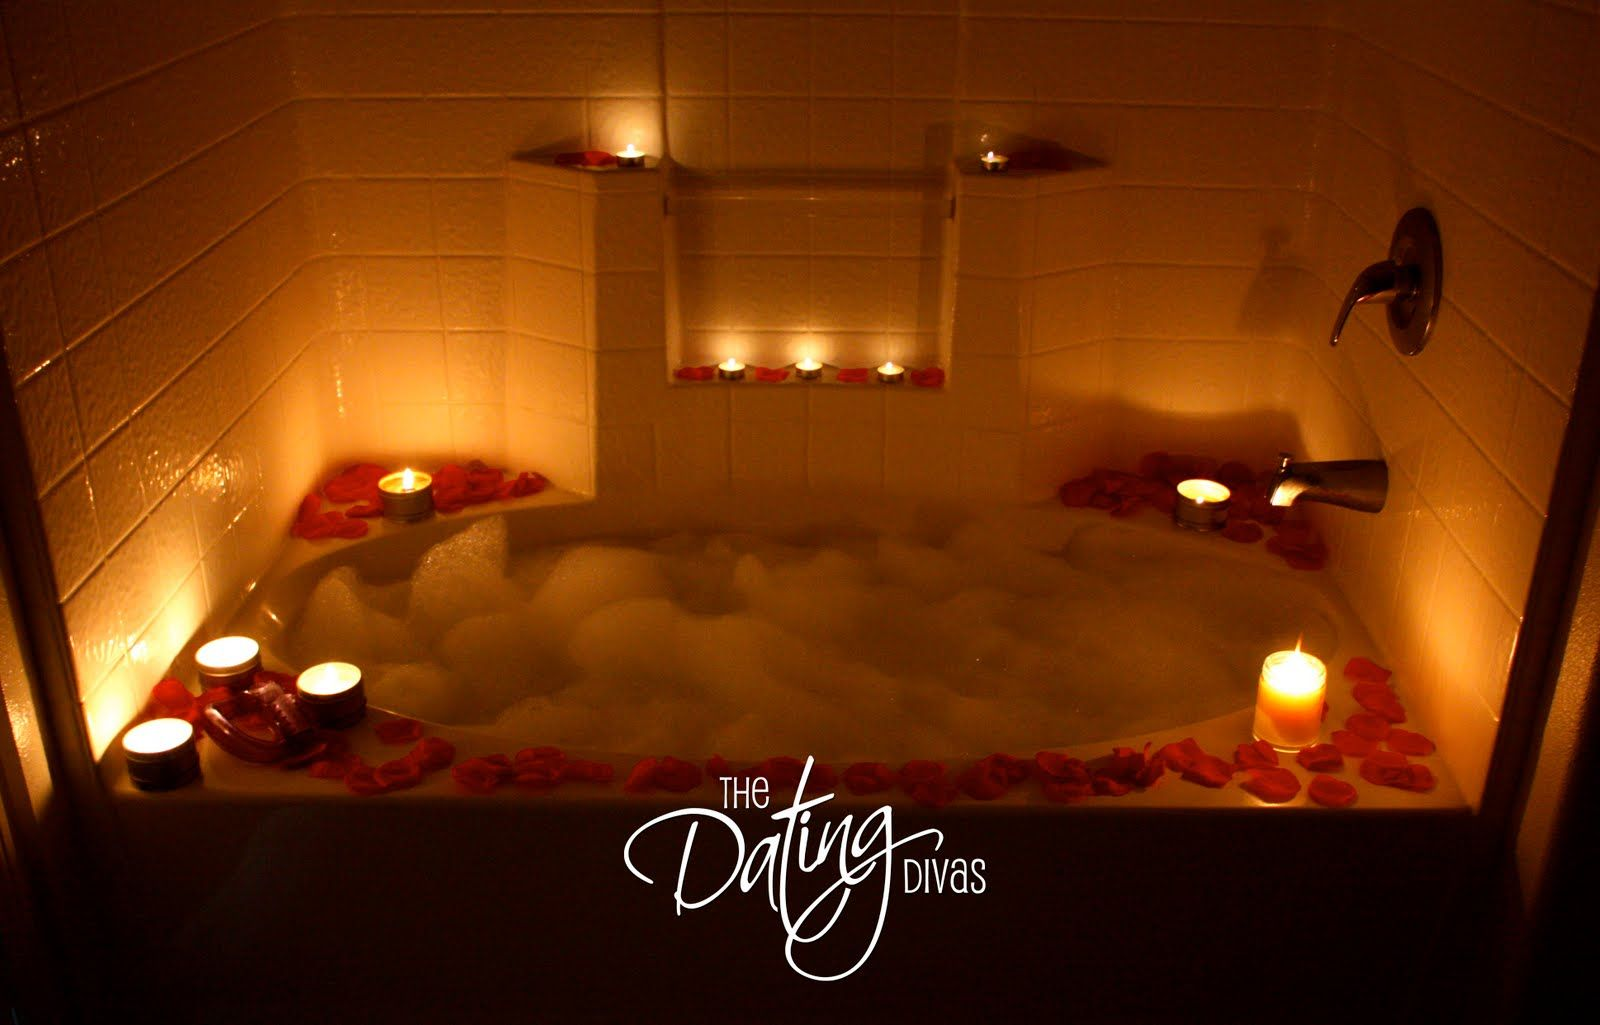 Set The Mood With Rose Petals For Romance With Your Spouse Bubble Baths Bath And Romantic